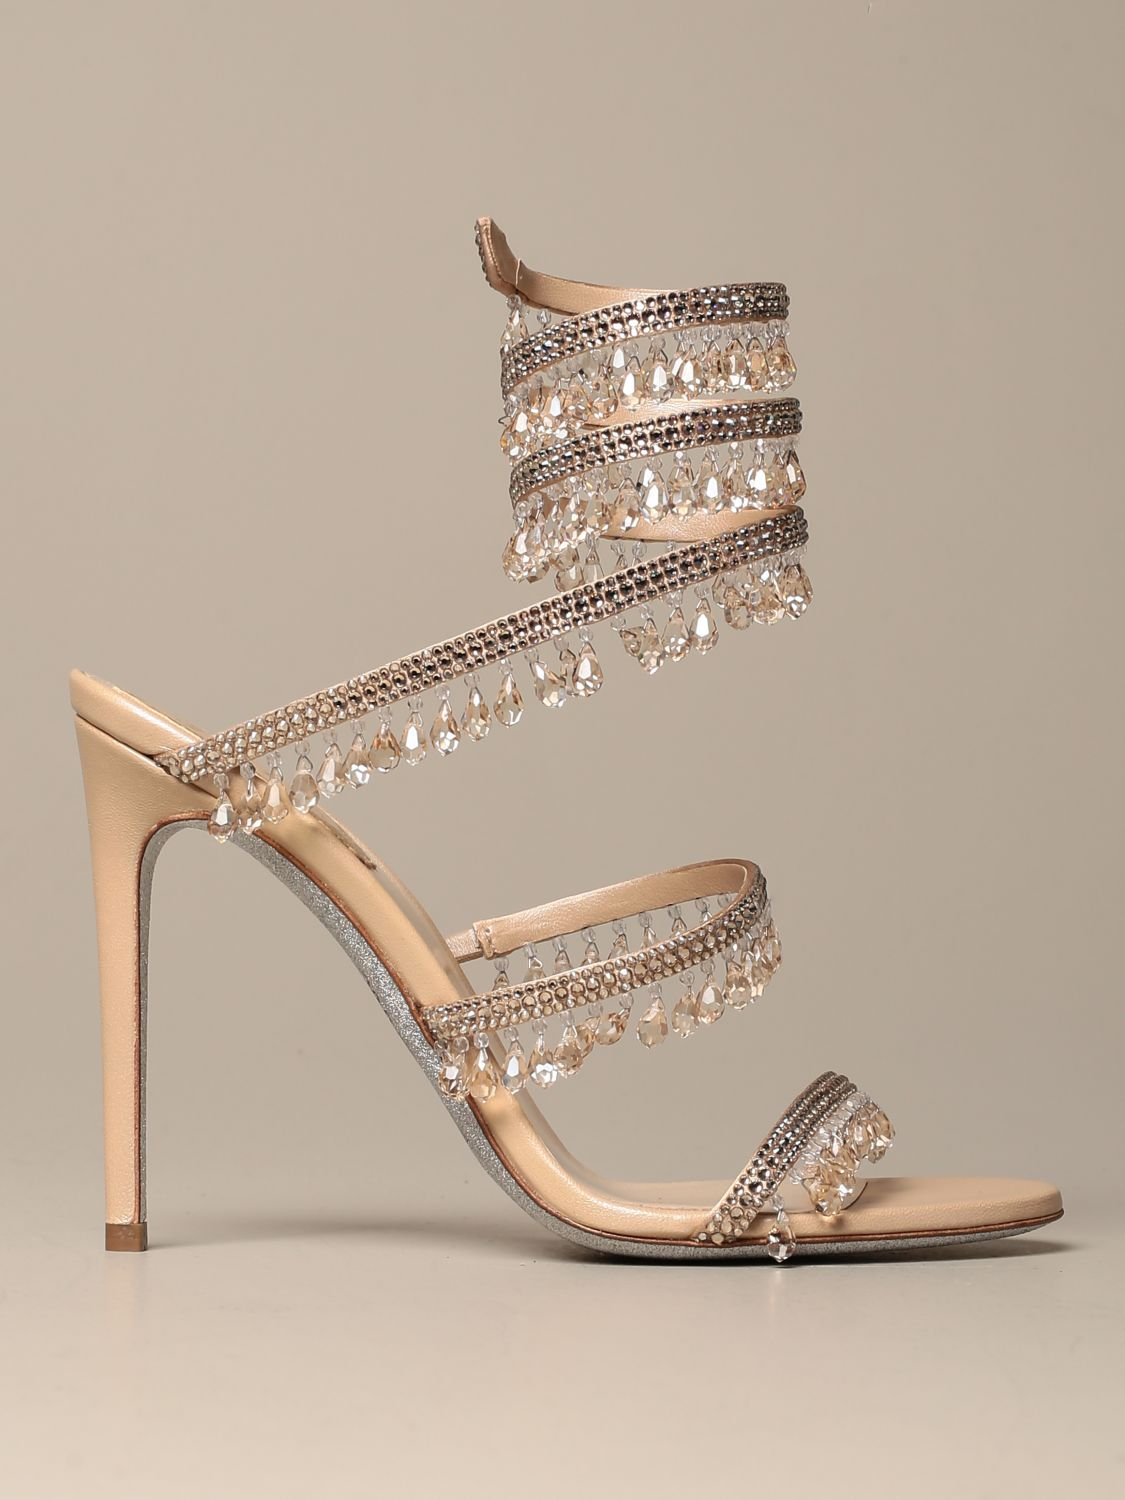 Heeled sandals Rene Caovilla: René Caovilla Chandelier sandal in satin with crystals and pendants nude 1